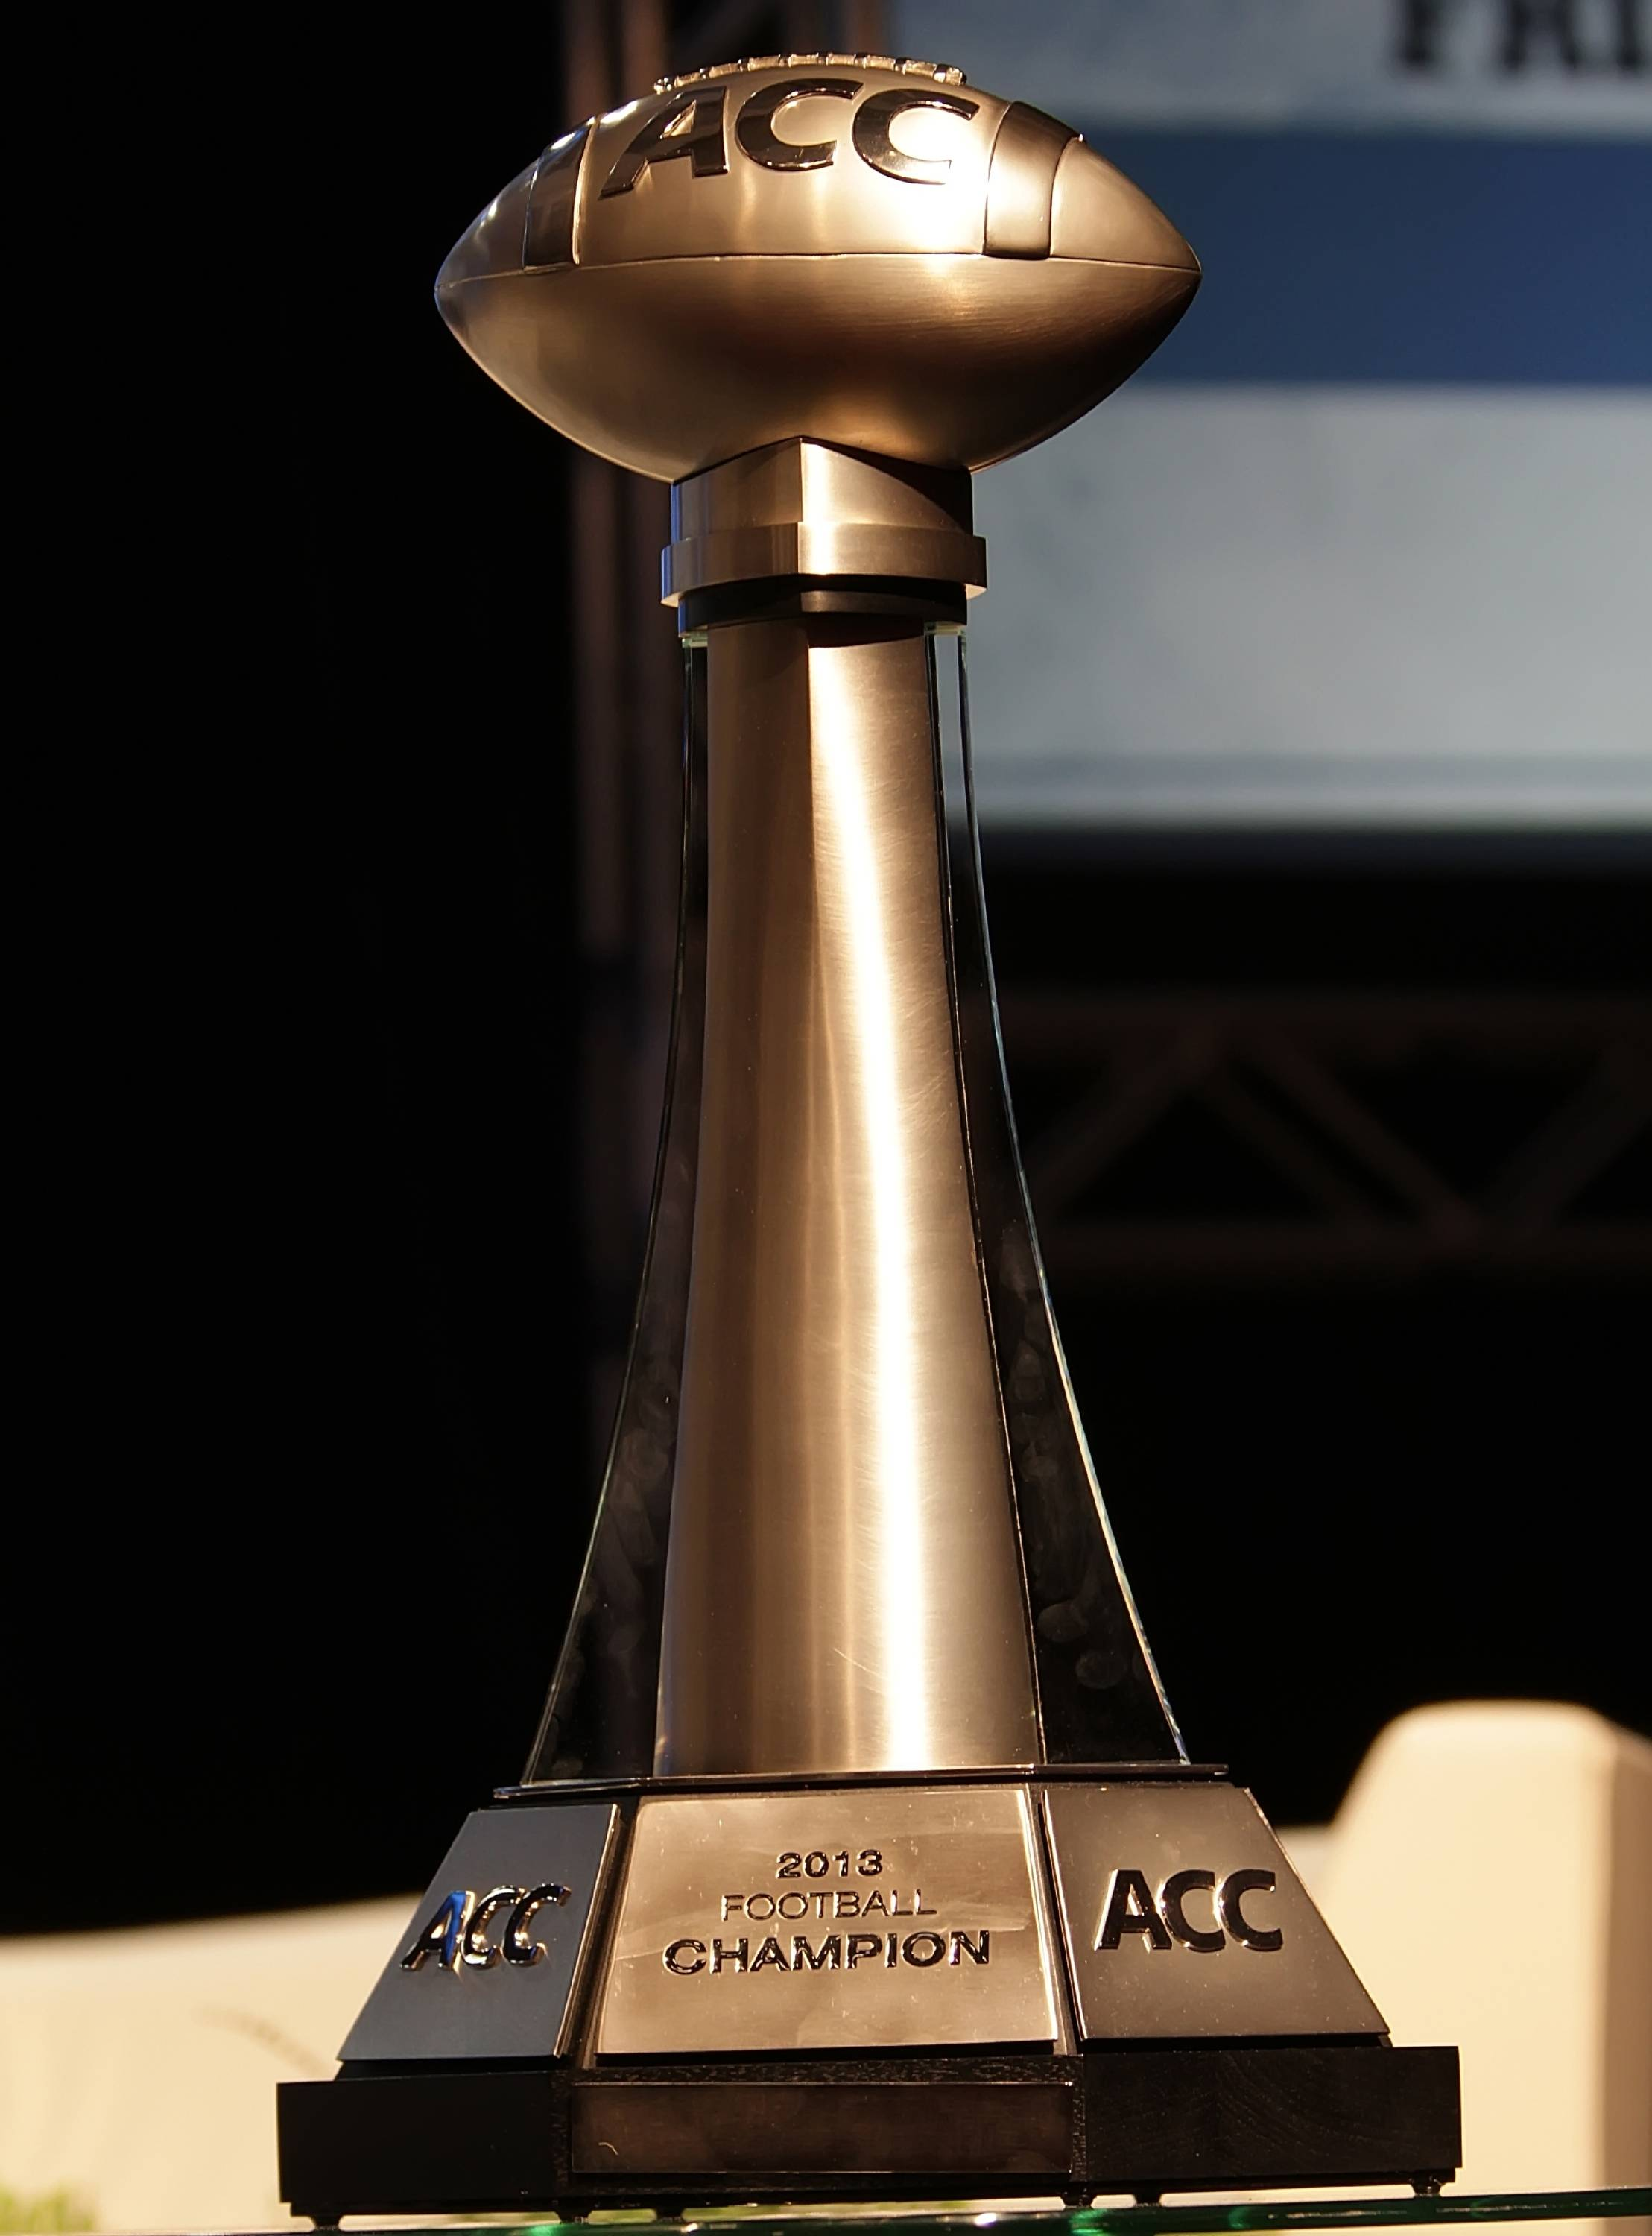 ACC Championship Trophy at the ACC Night of Legends